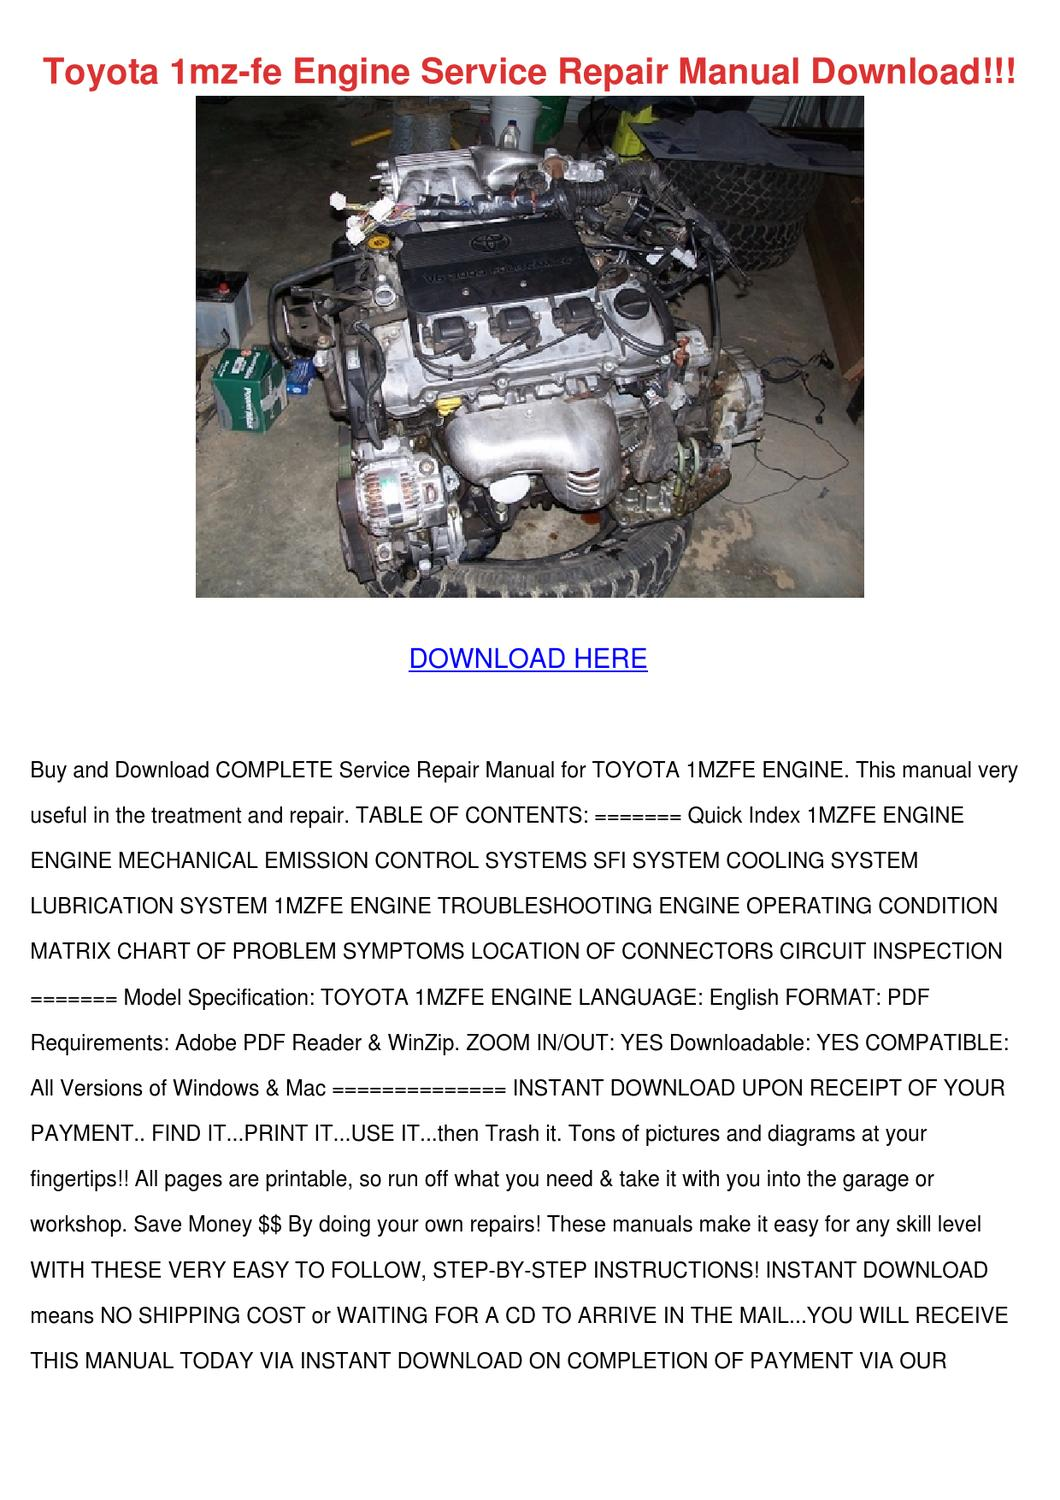 Toyota 1mz Fe Engine Service Repair Manual Do By Willette